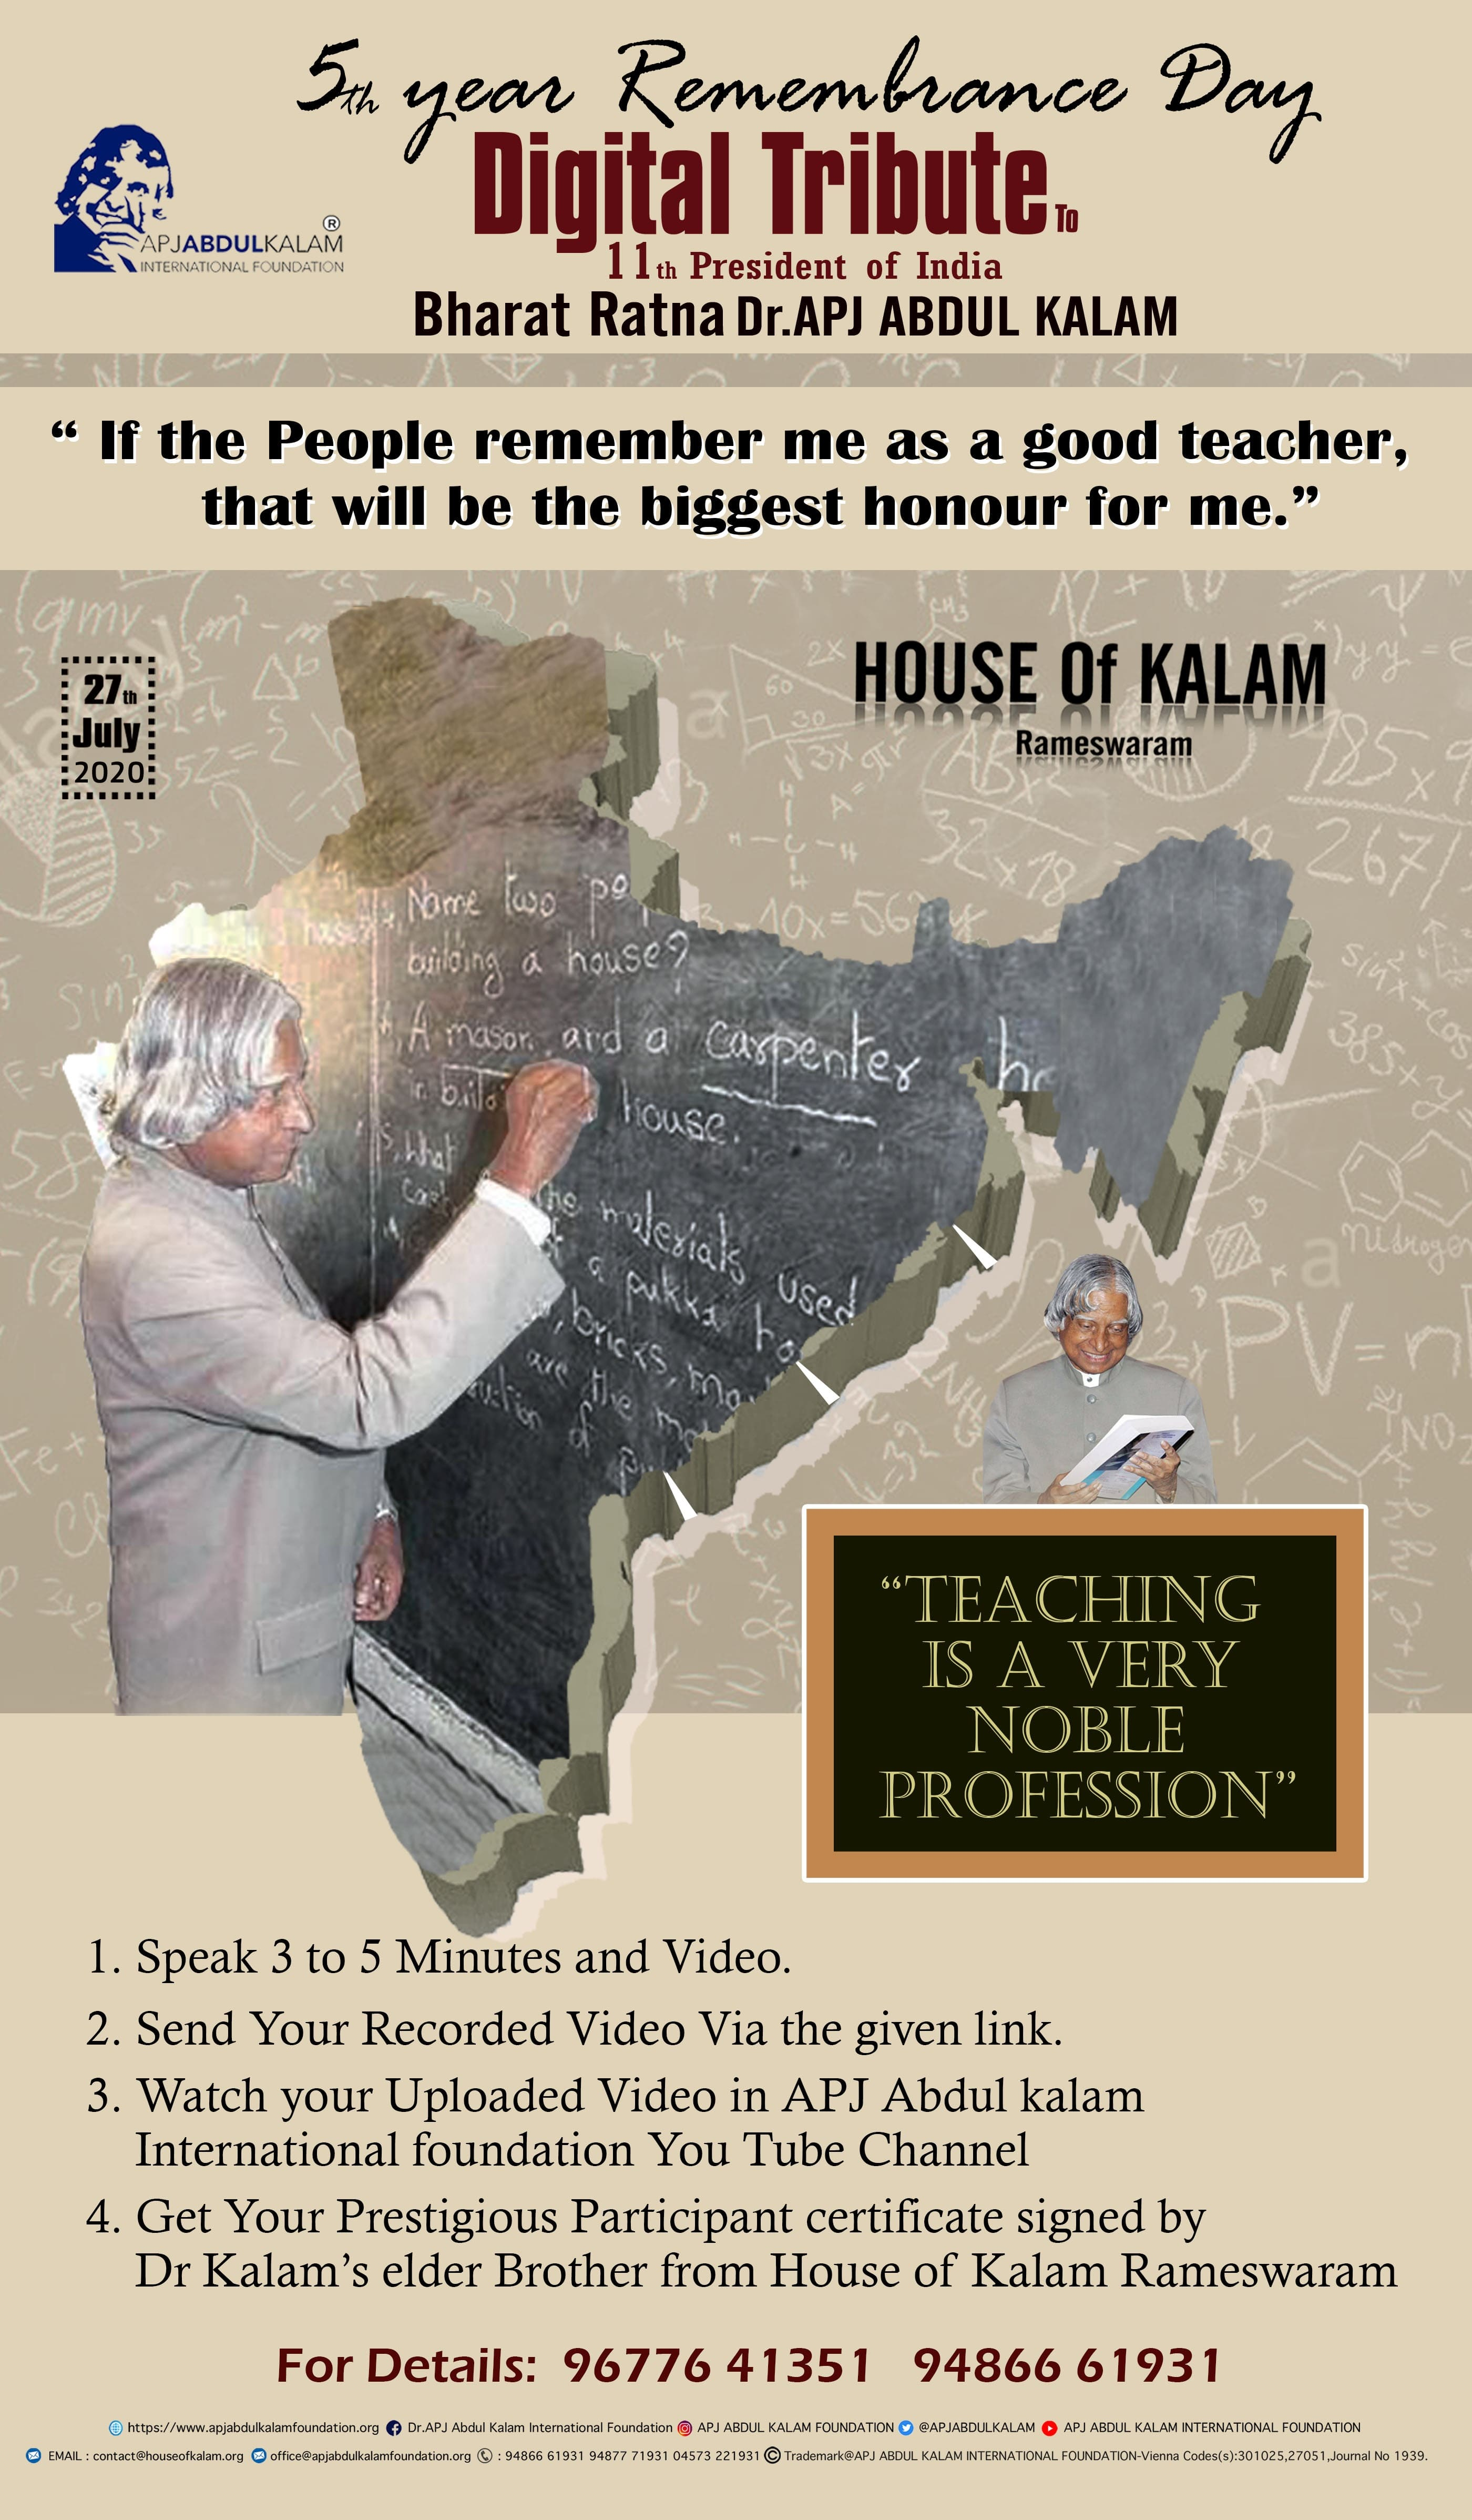 Apj Abdulkalam Foundation The Office And Residence Of 11th President Of India